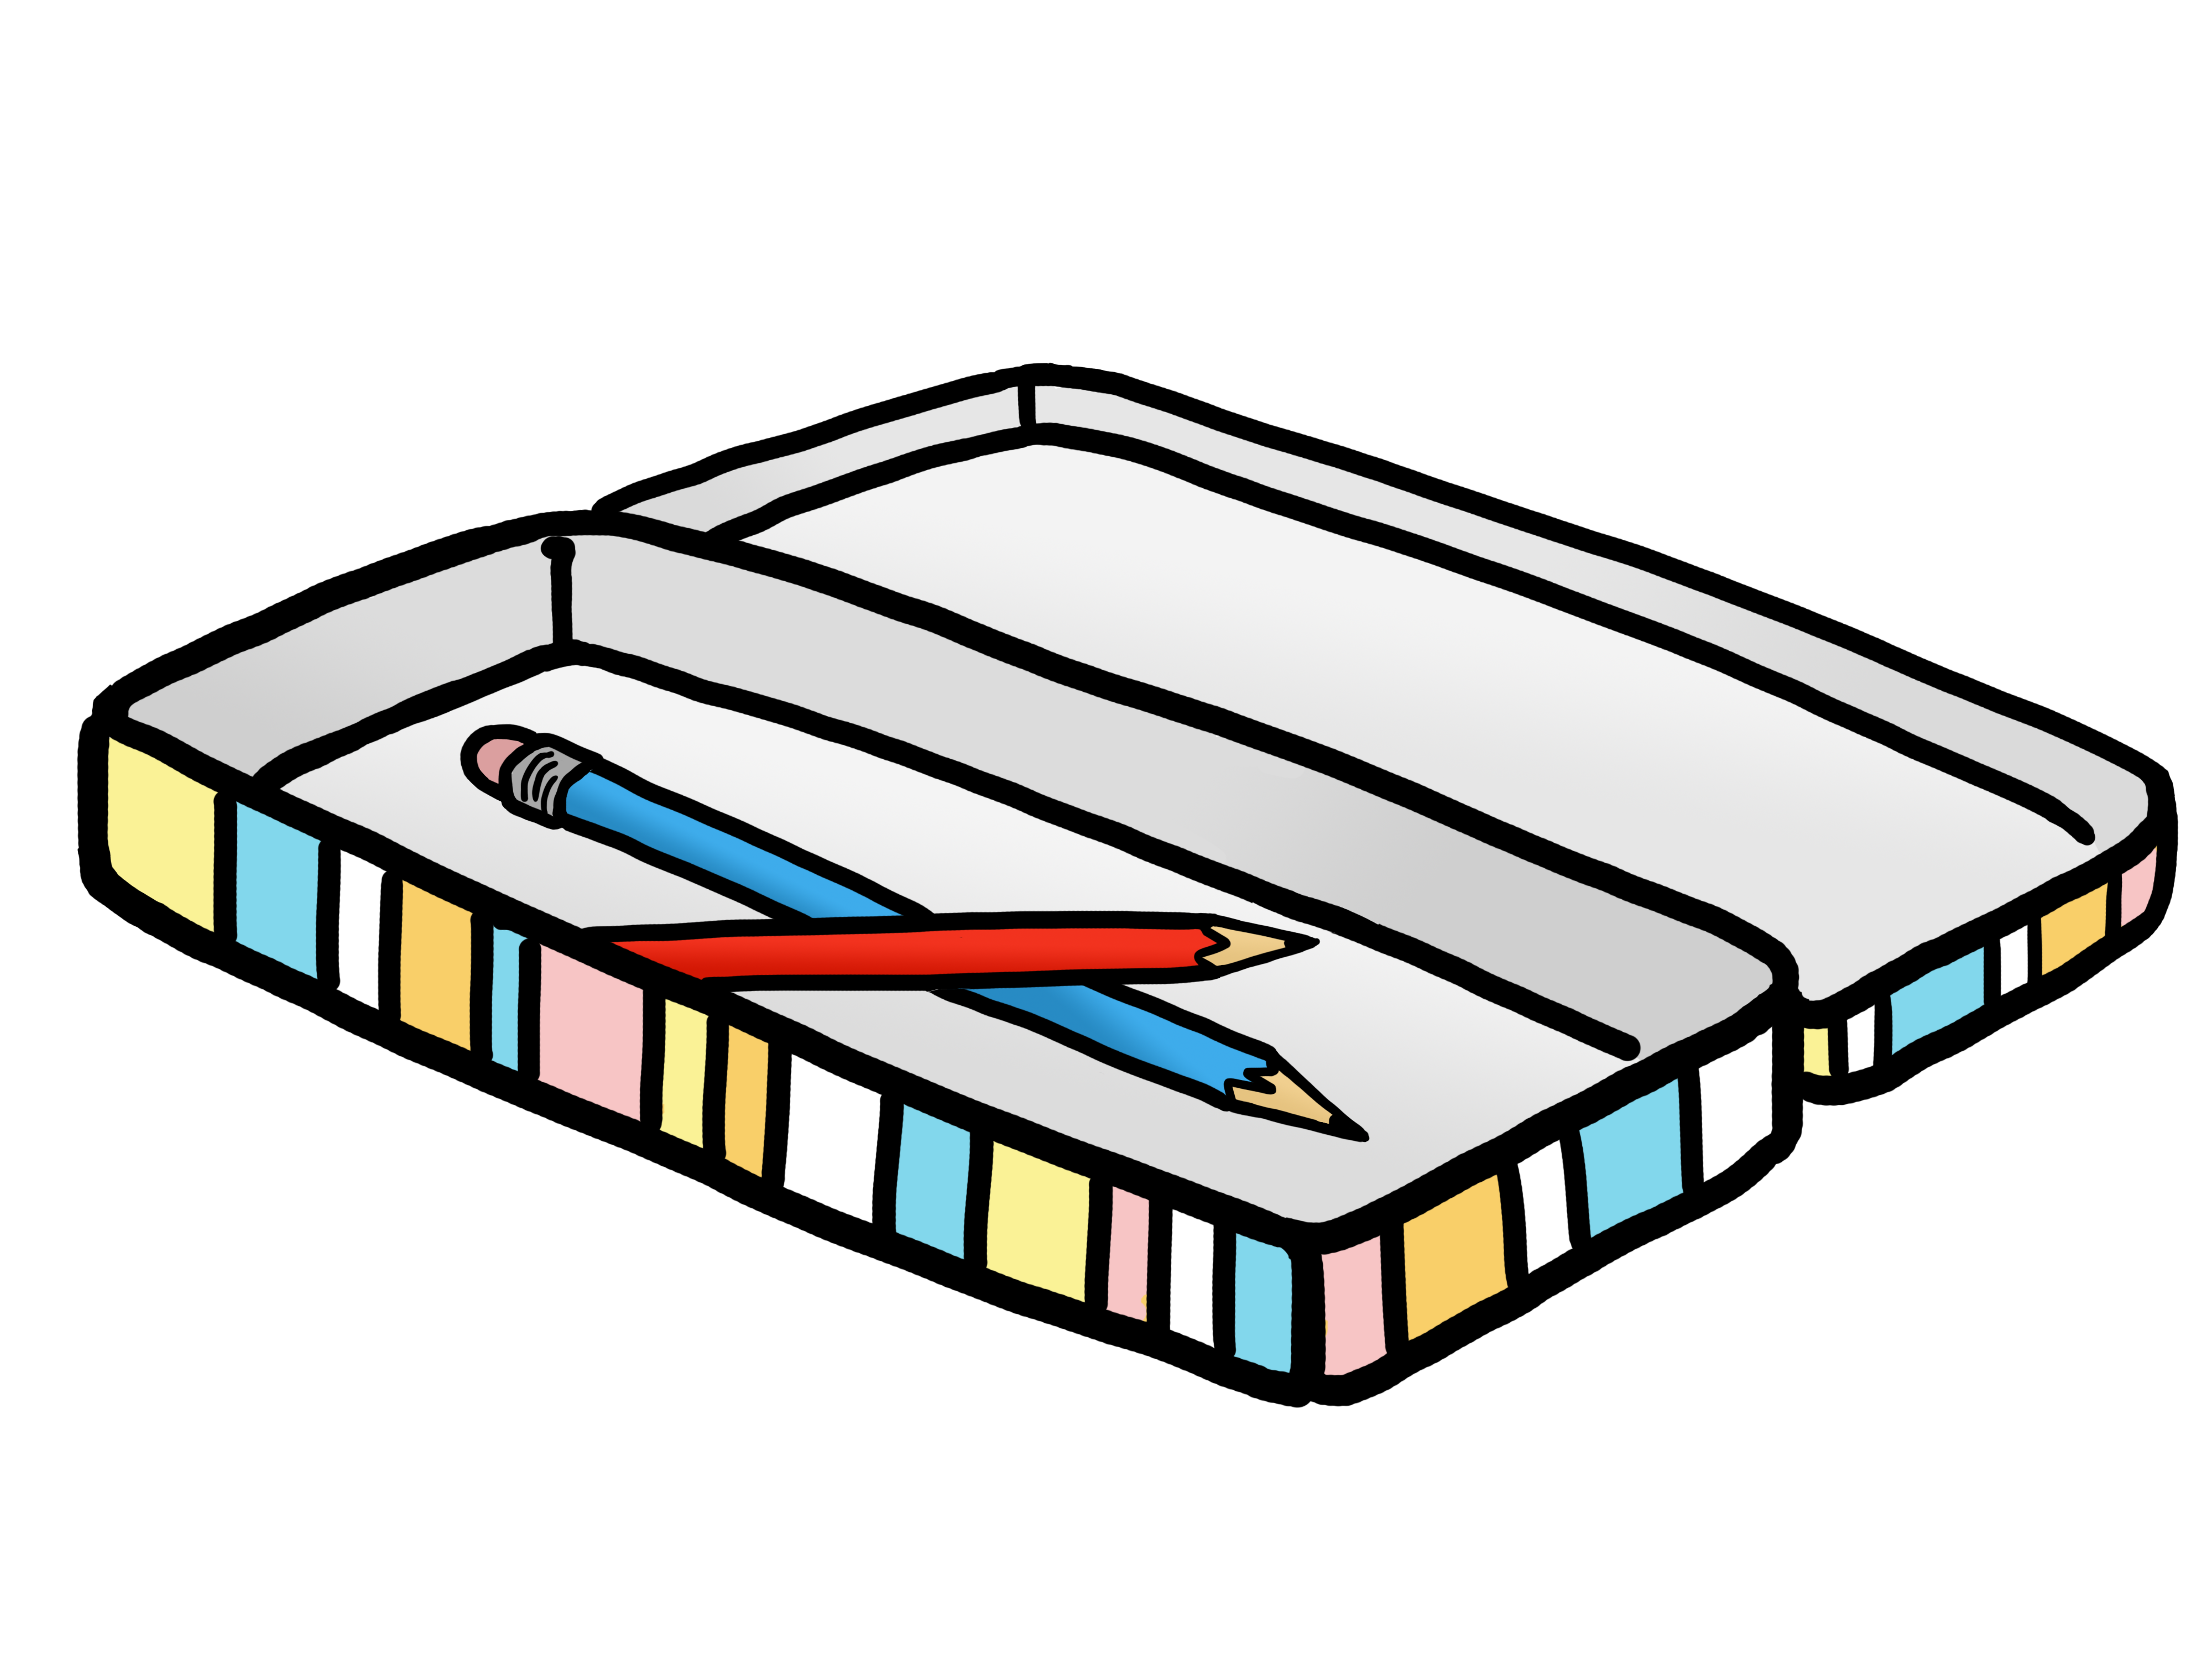 Pencil cases clipart 20 free Cliparts | Download images on ...